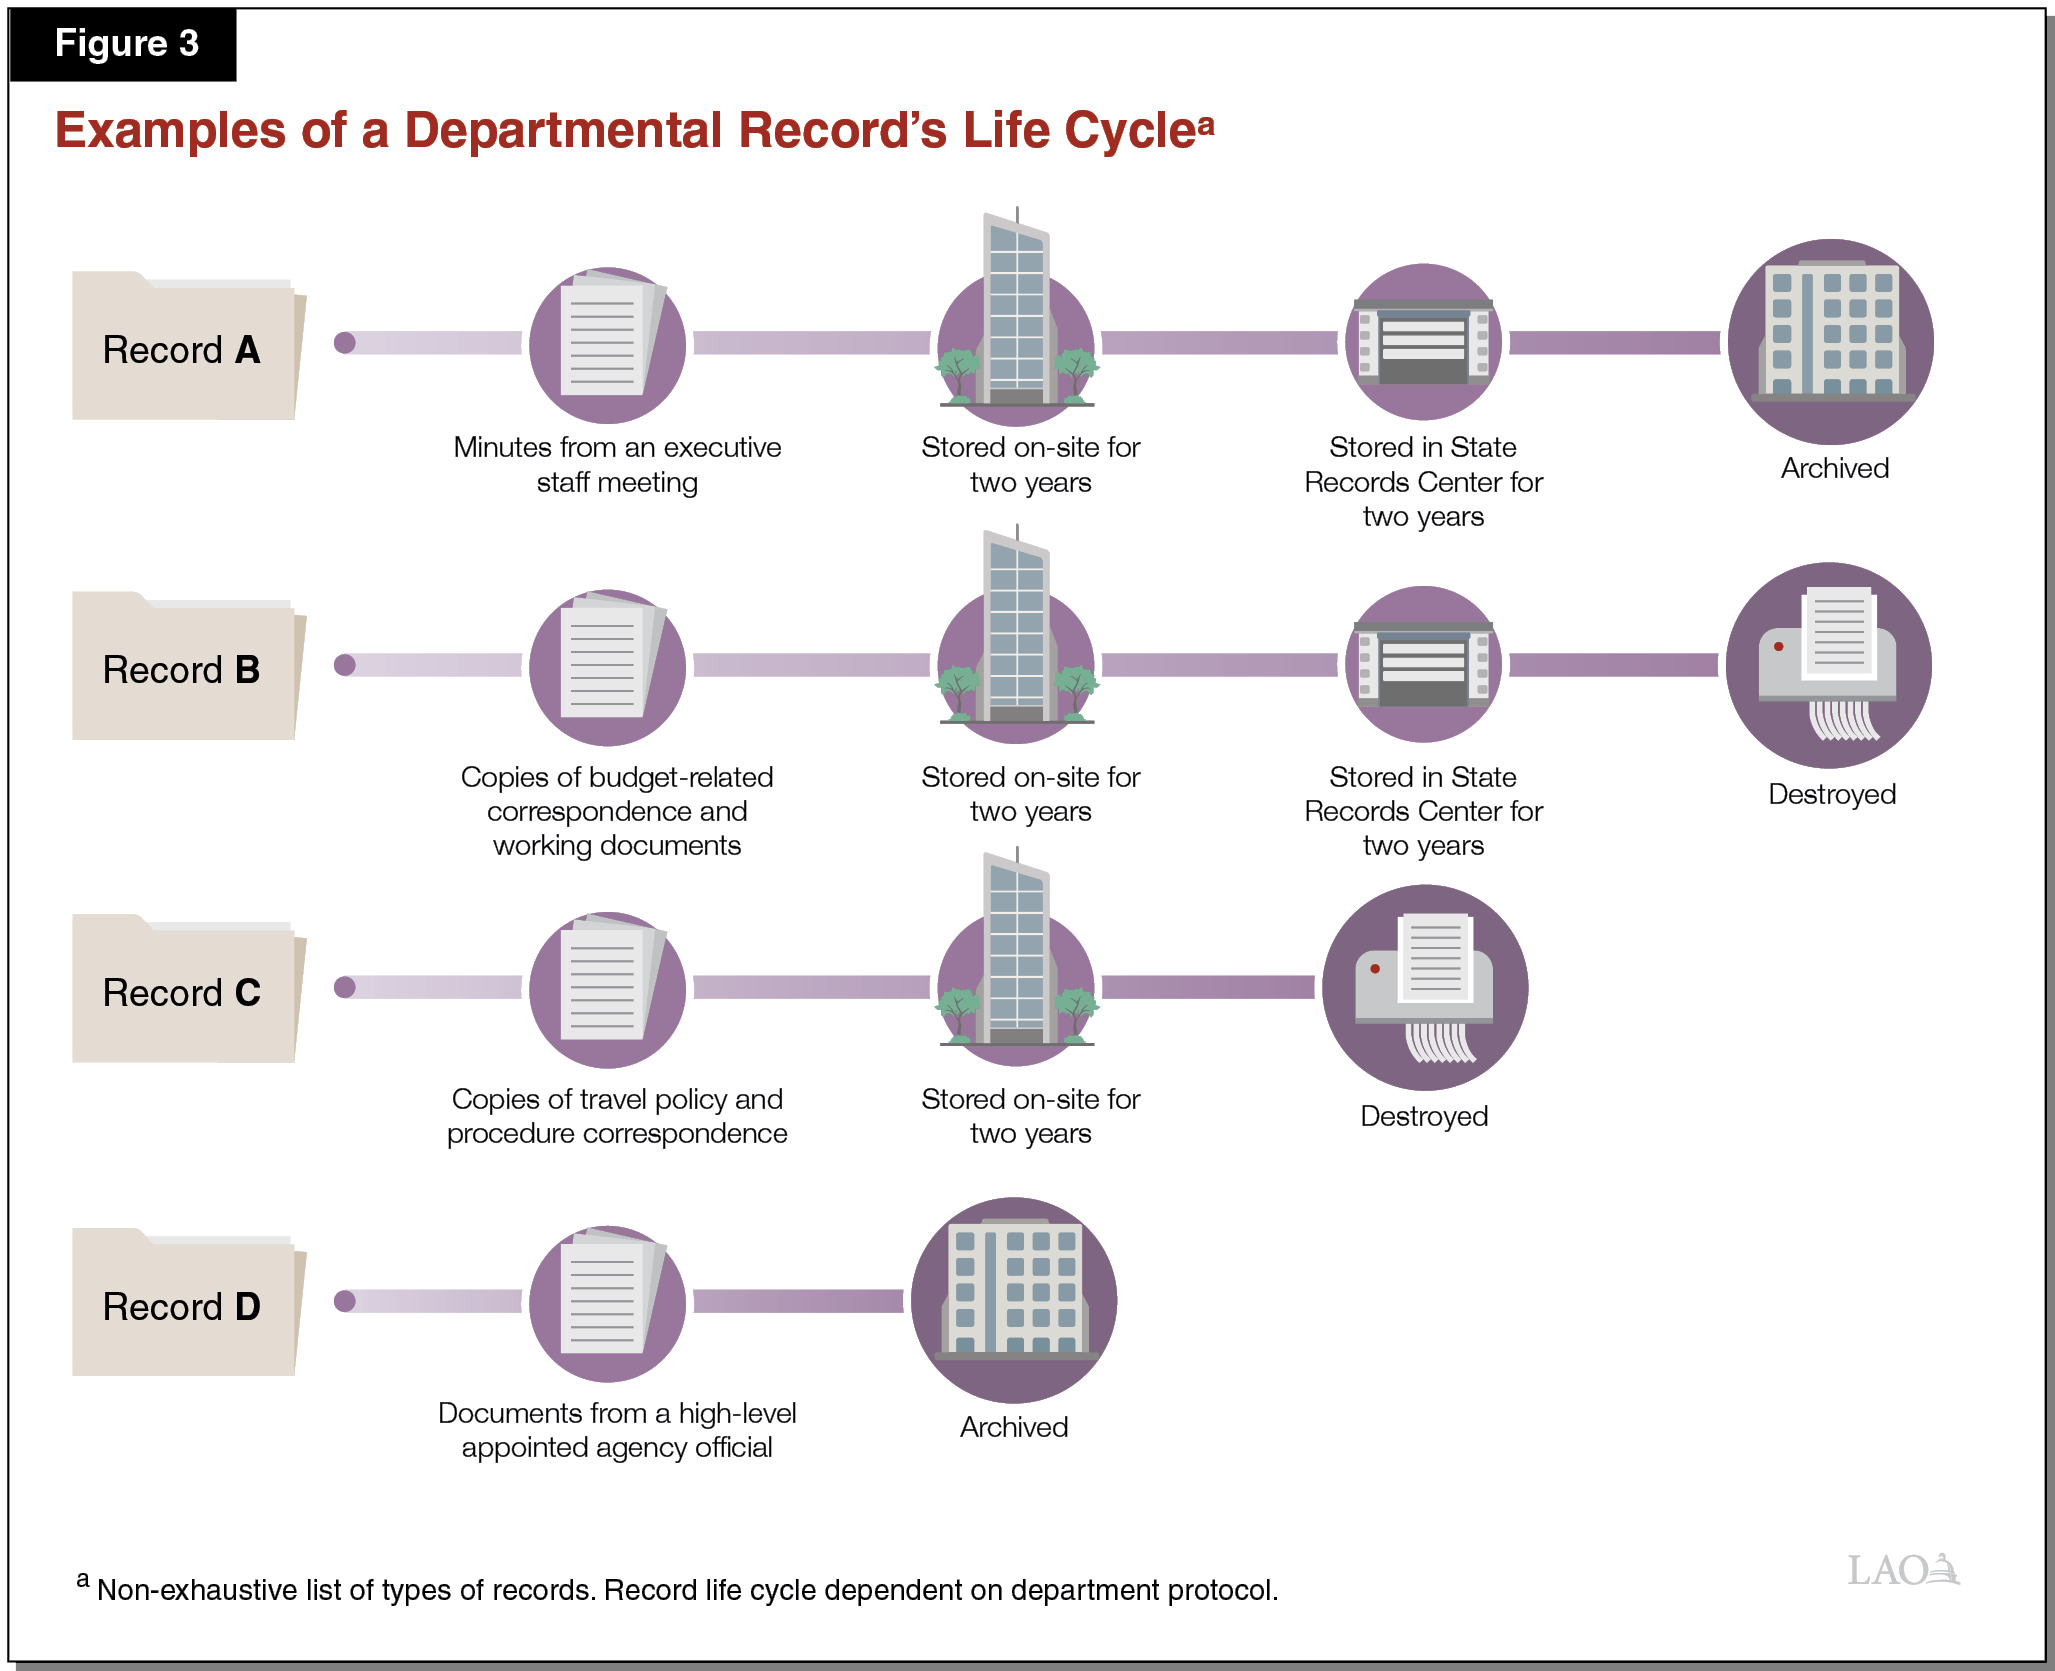 Figure 3 - Examples of a Department Records Life Cycle